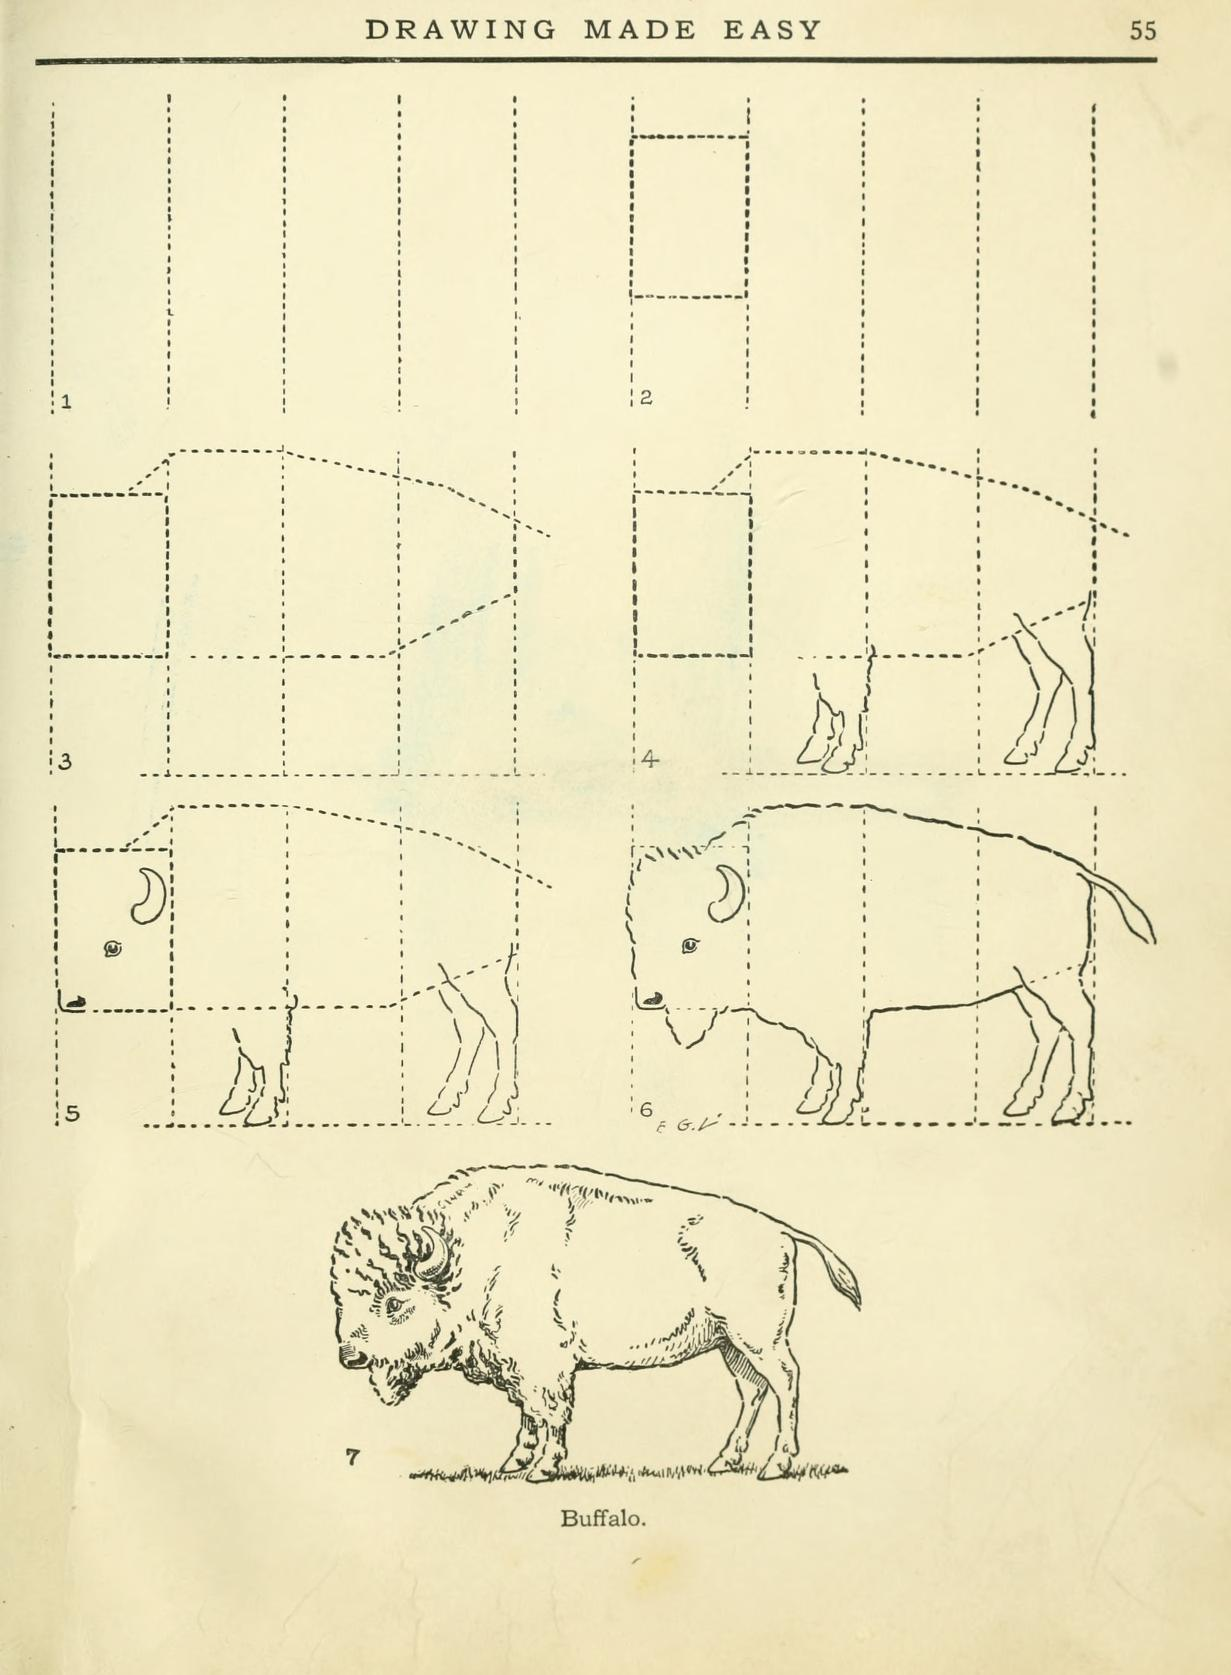 DRAWING MADE EASY HOW TO DRAW A BUFFALO